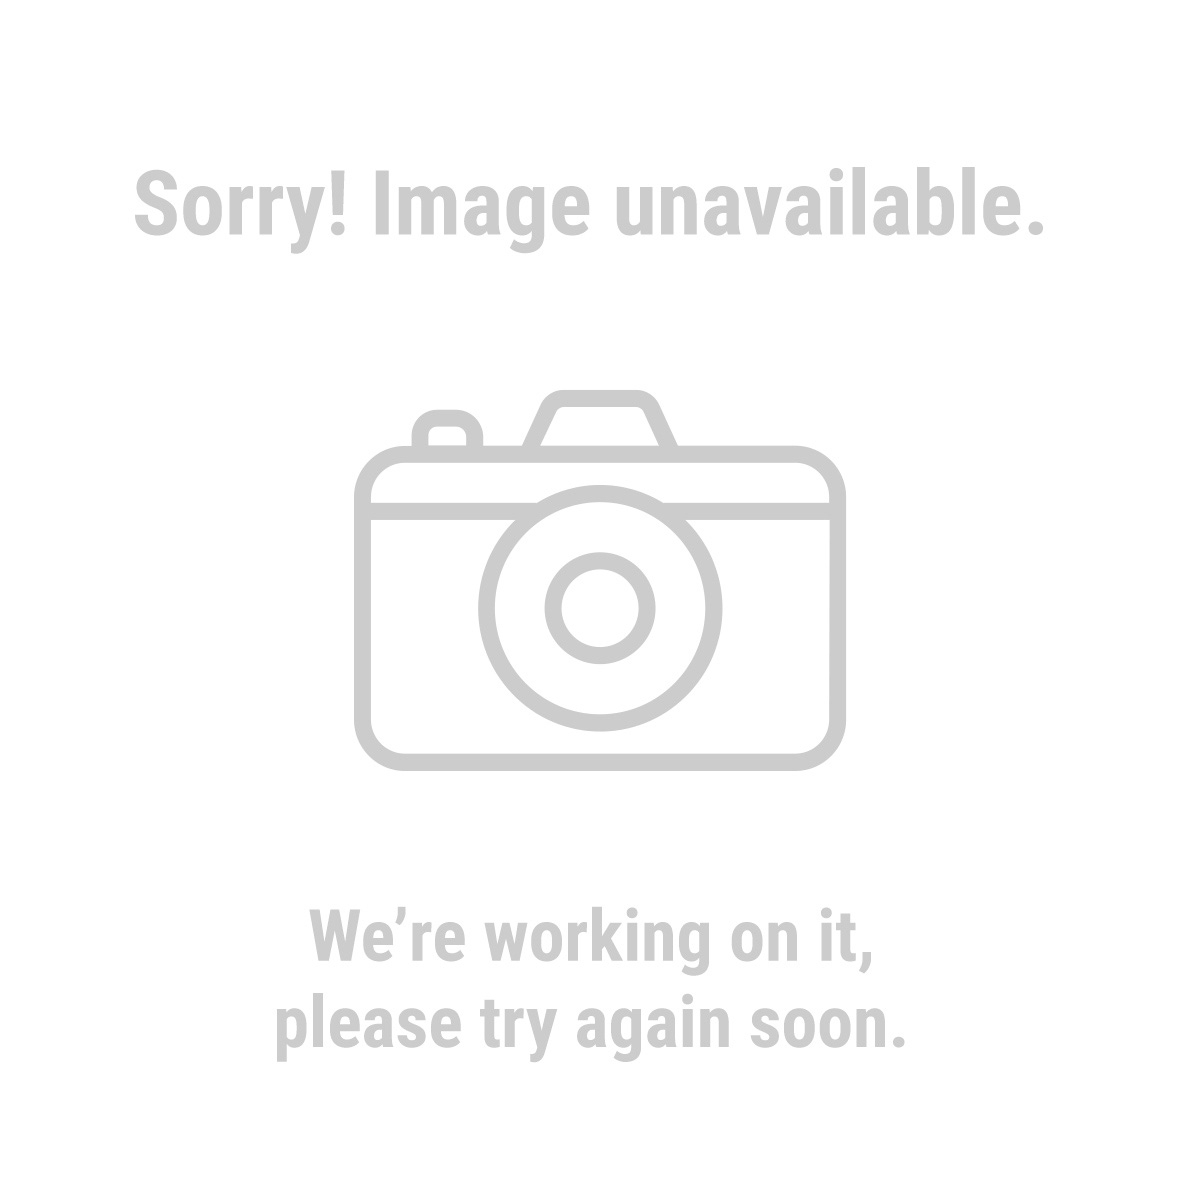 Meguiar's 67718 15 Oz. Meguiar's Hot Shine™ High Gloss Tire Coating